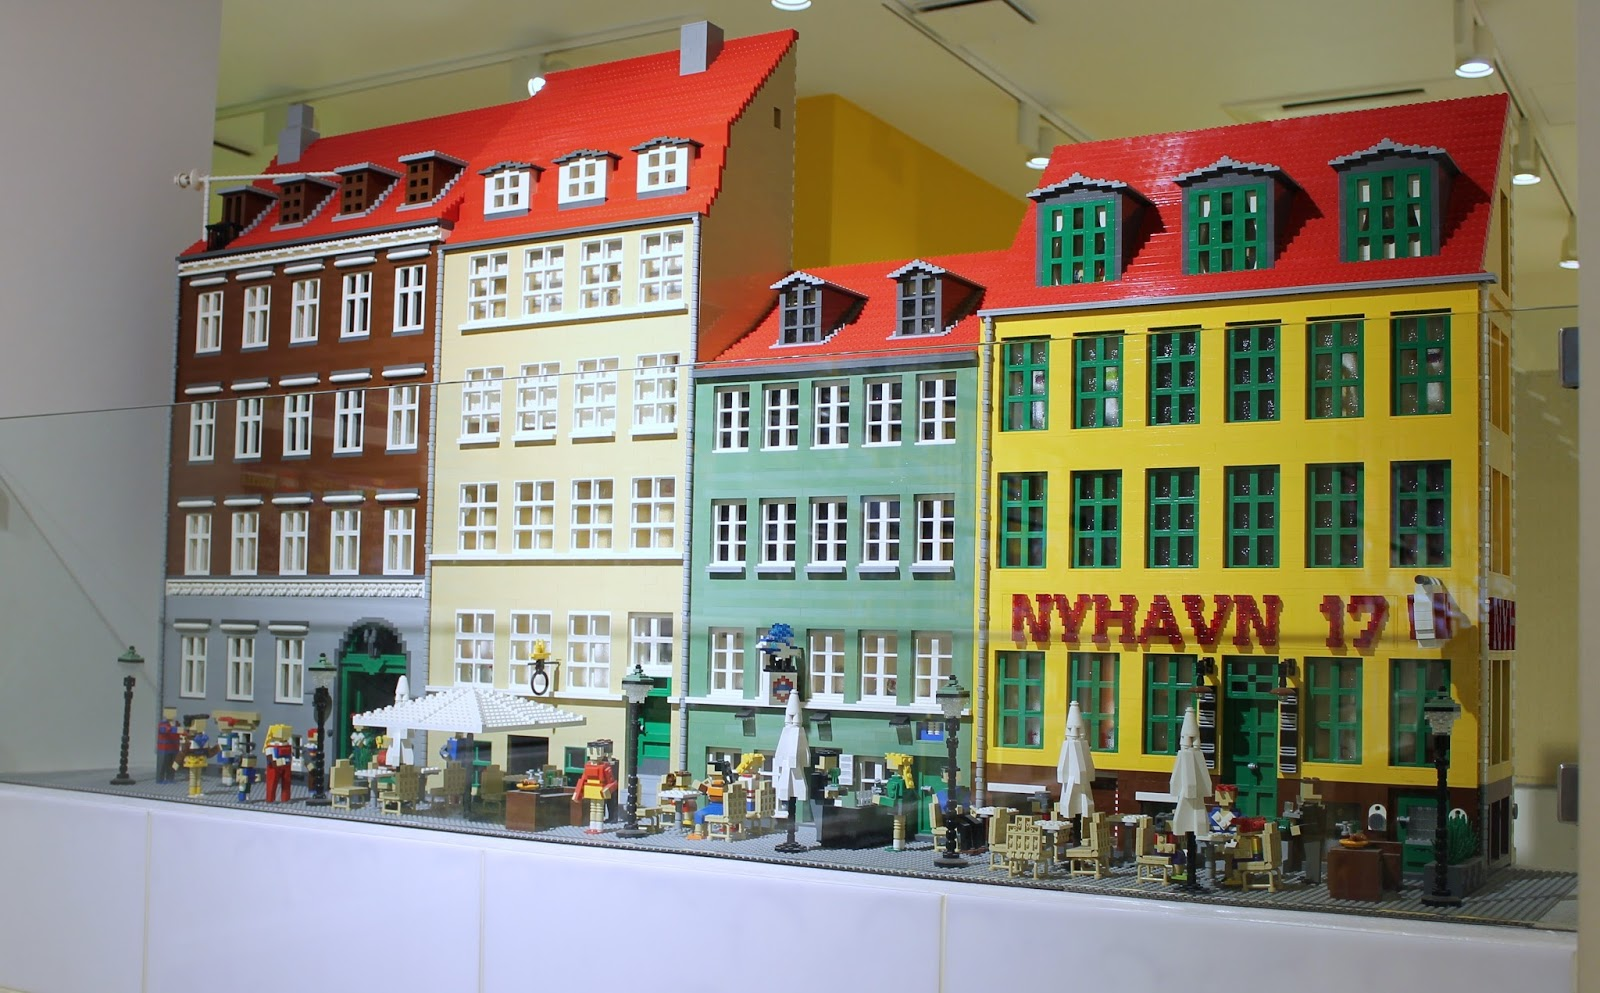 Lego Nyhavn - Copenhagen Travel Post